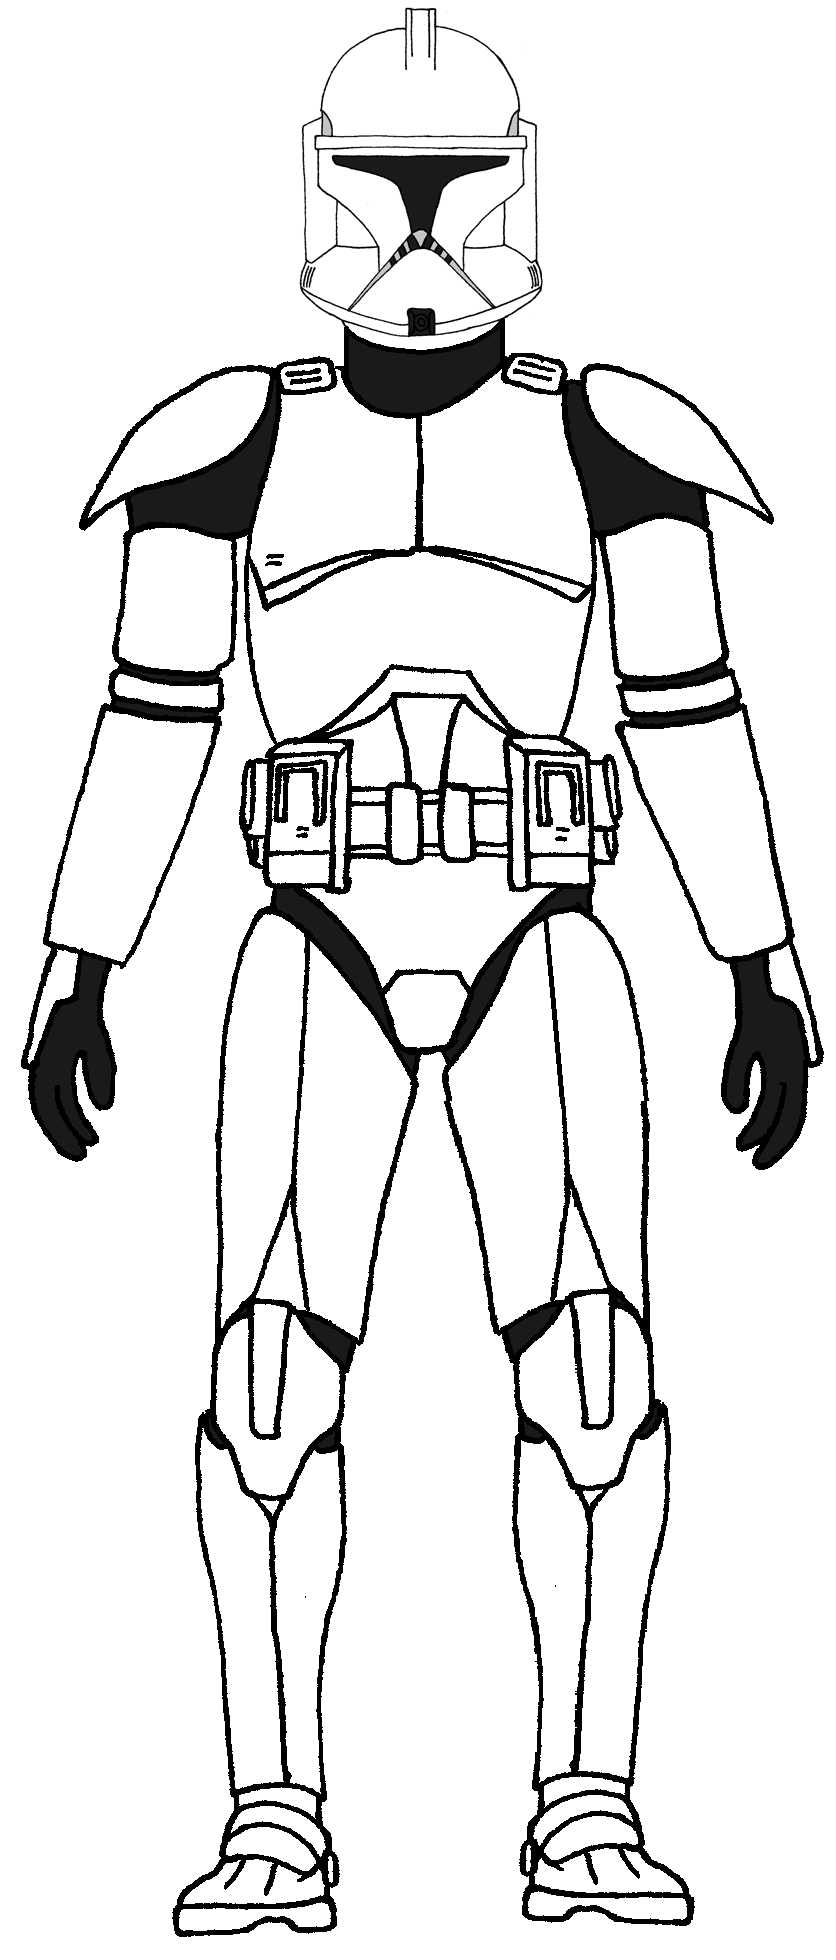 Coloring star wars clone